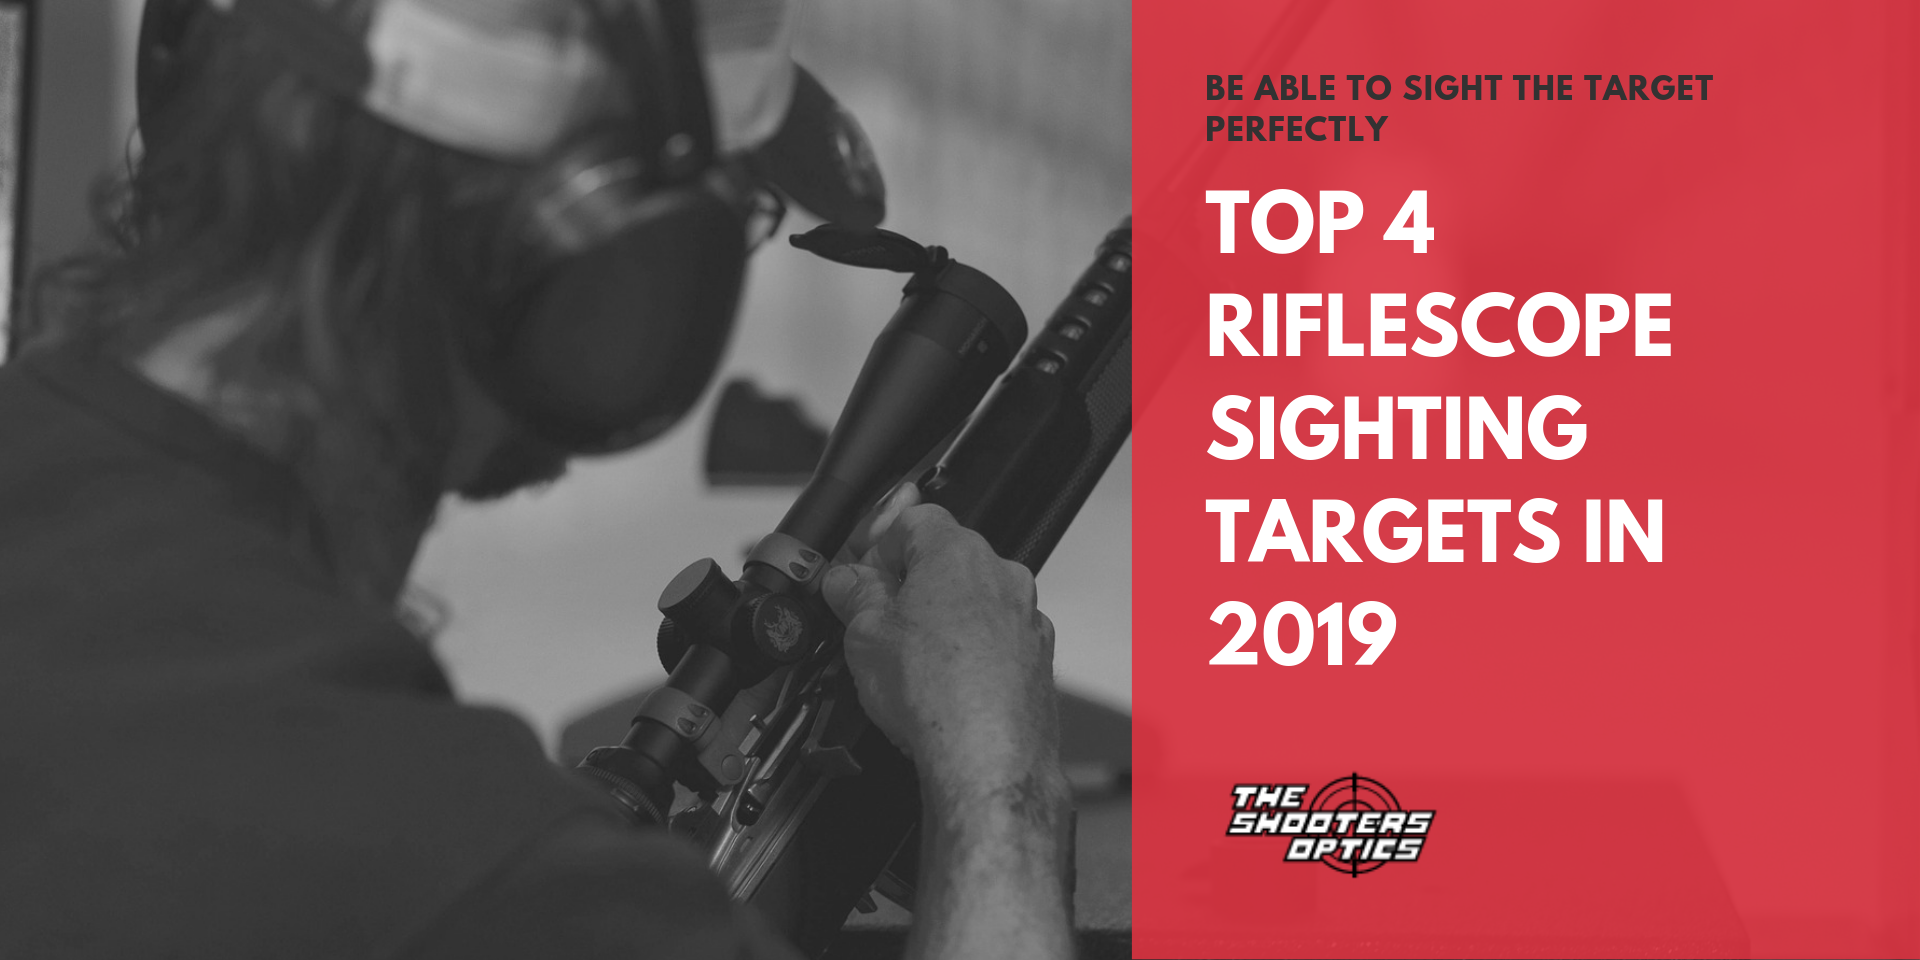 Top 4 Riflescope Sighting Targets in 2019